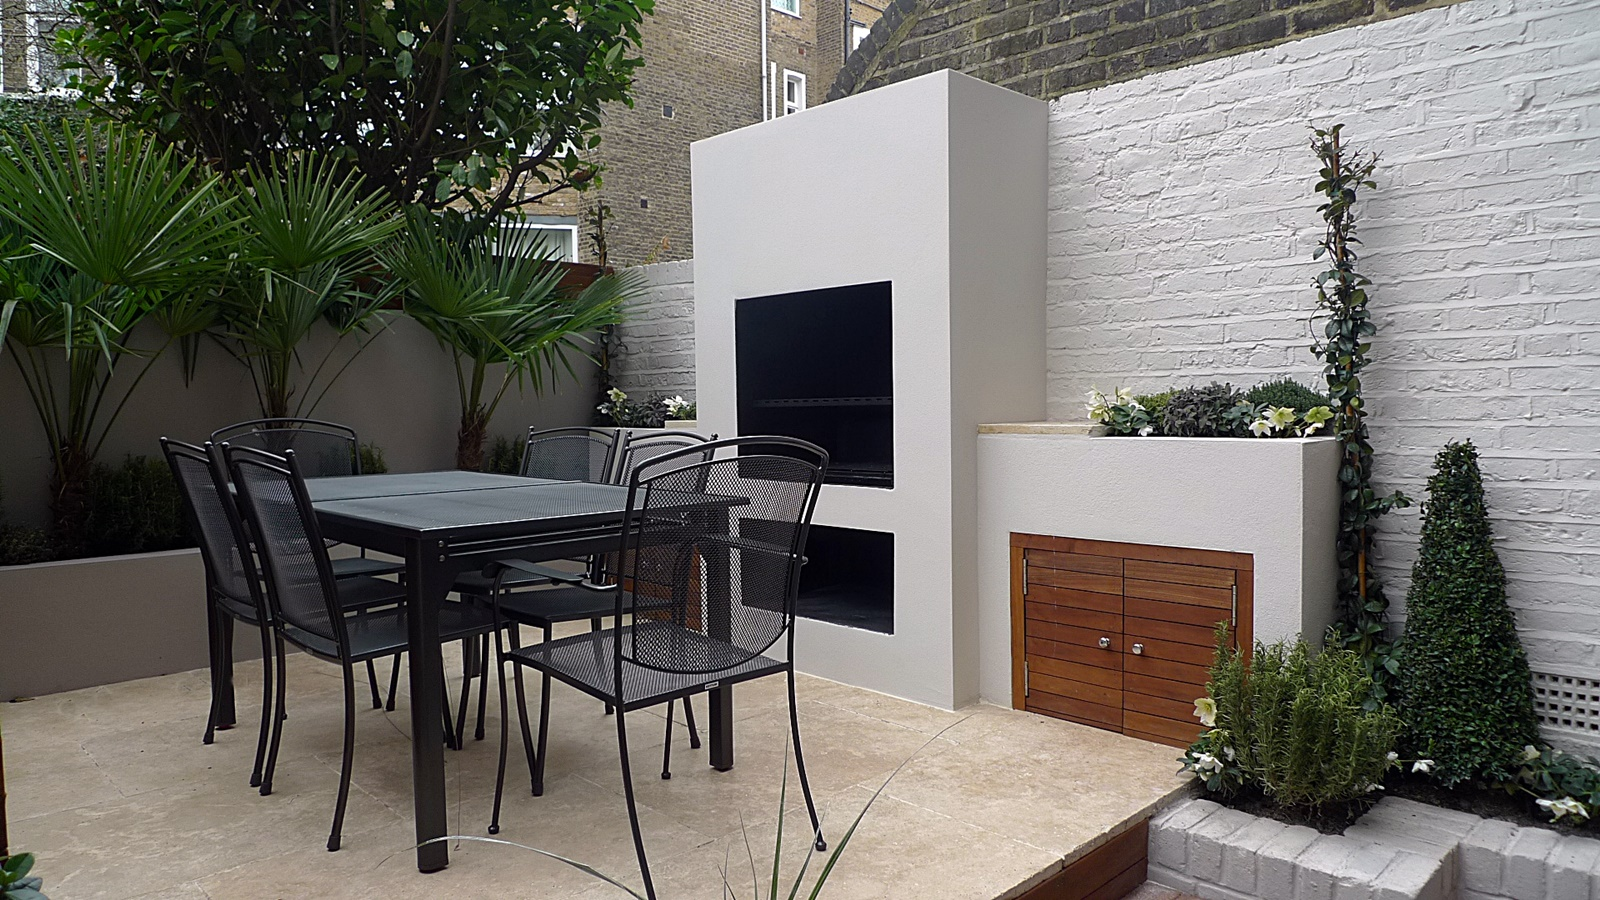 BBQ outdoor fire place cream paving modern courtyard garden design London chelsea kensington fulham mayfair